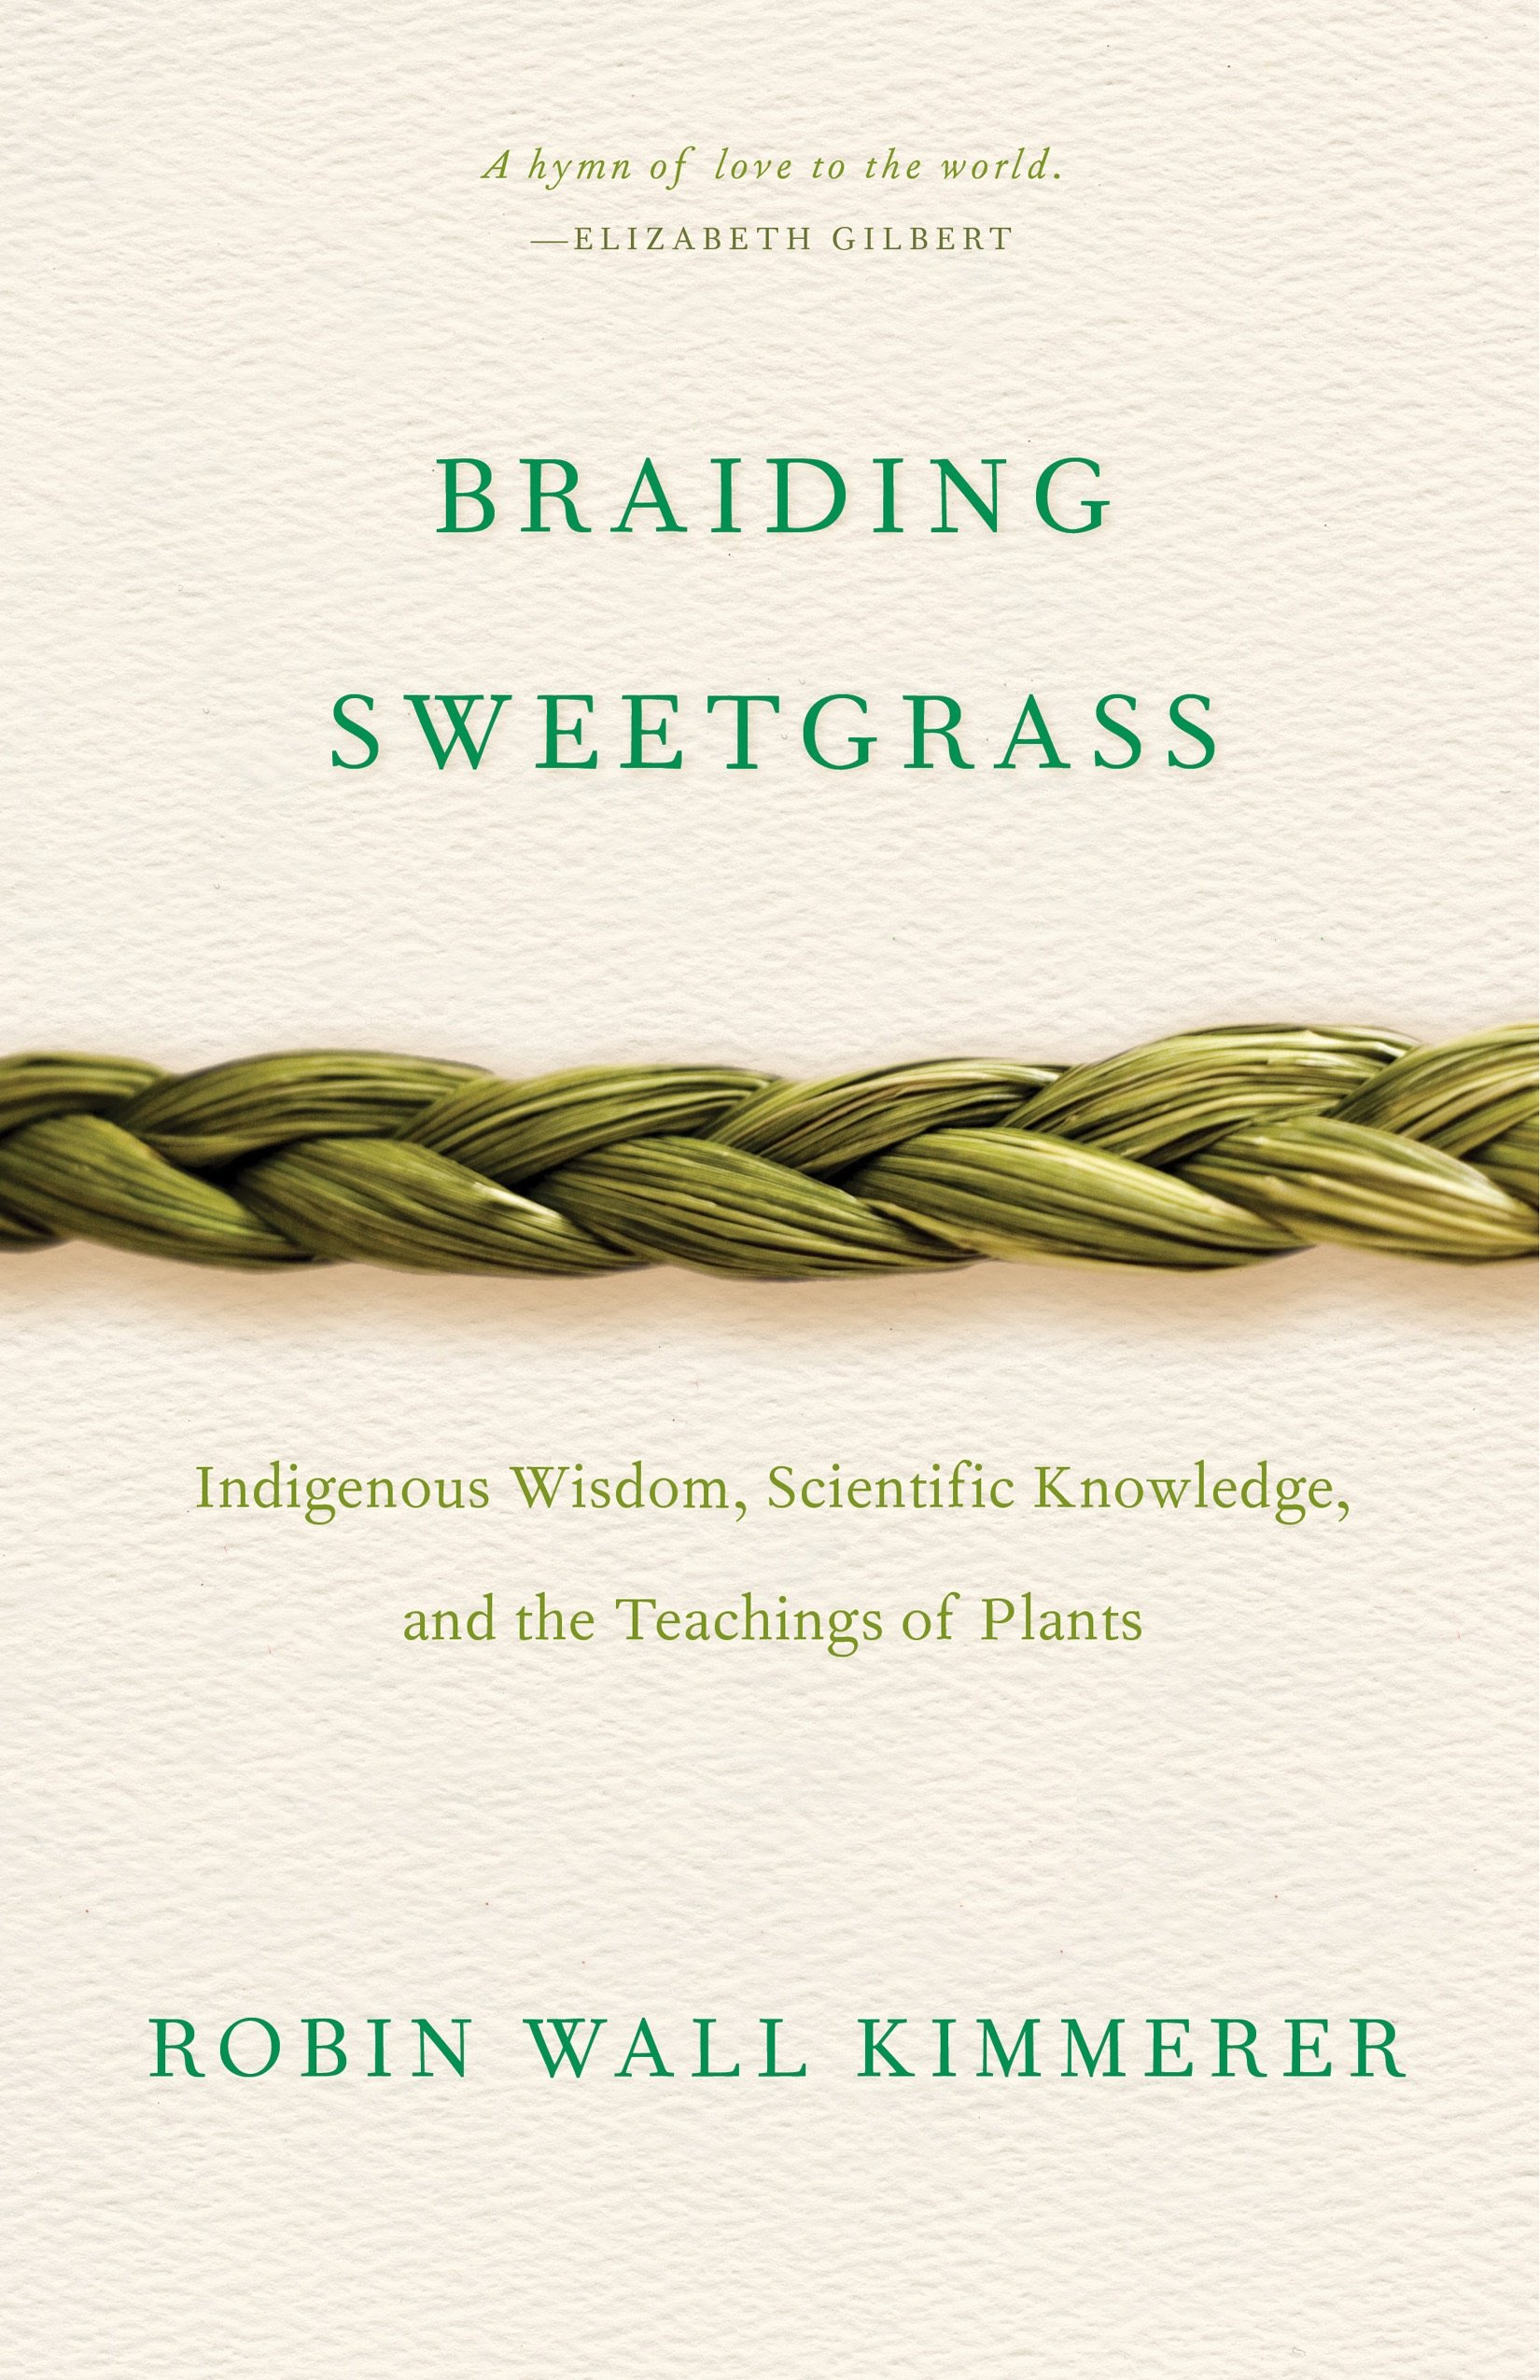 Books By Native Authors - Braiding Sweetgrass by Robin Wall Kimmerer